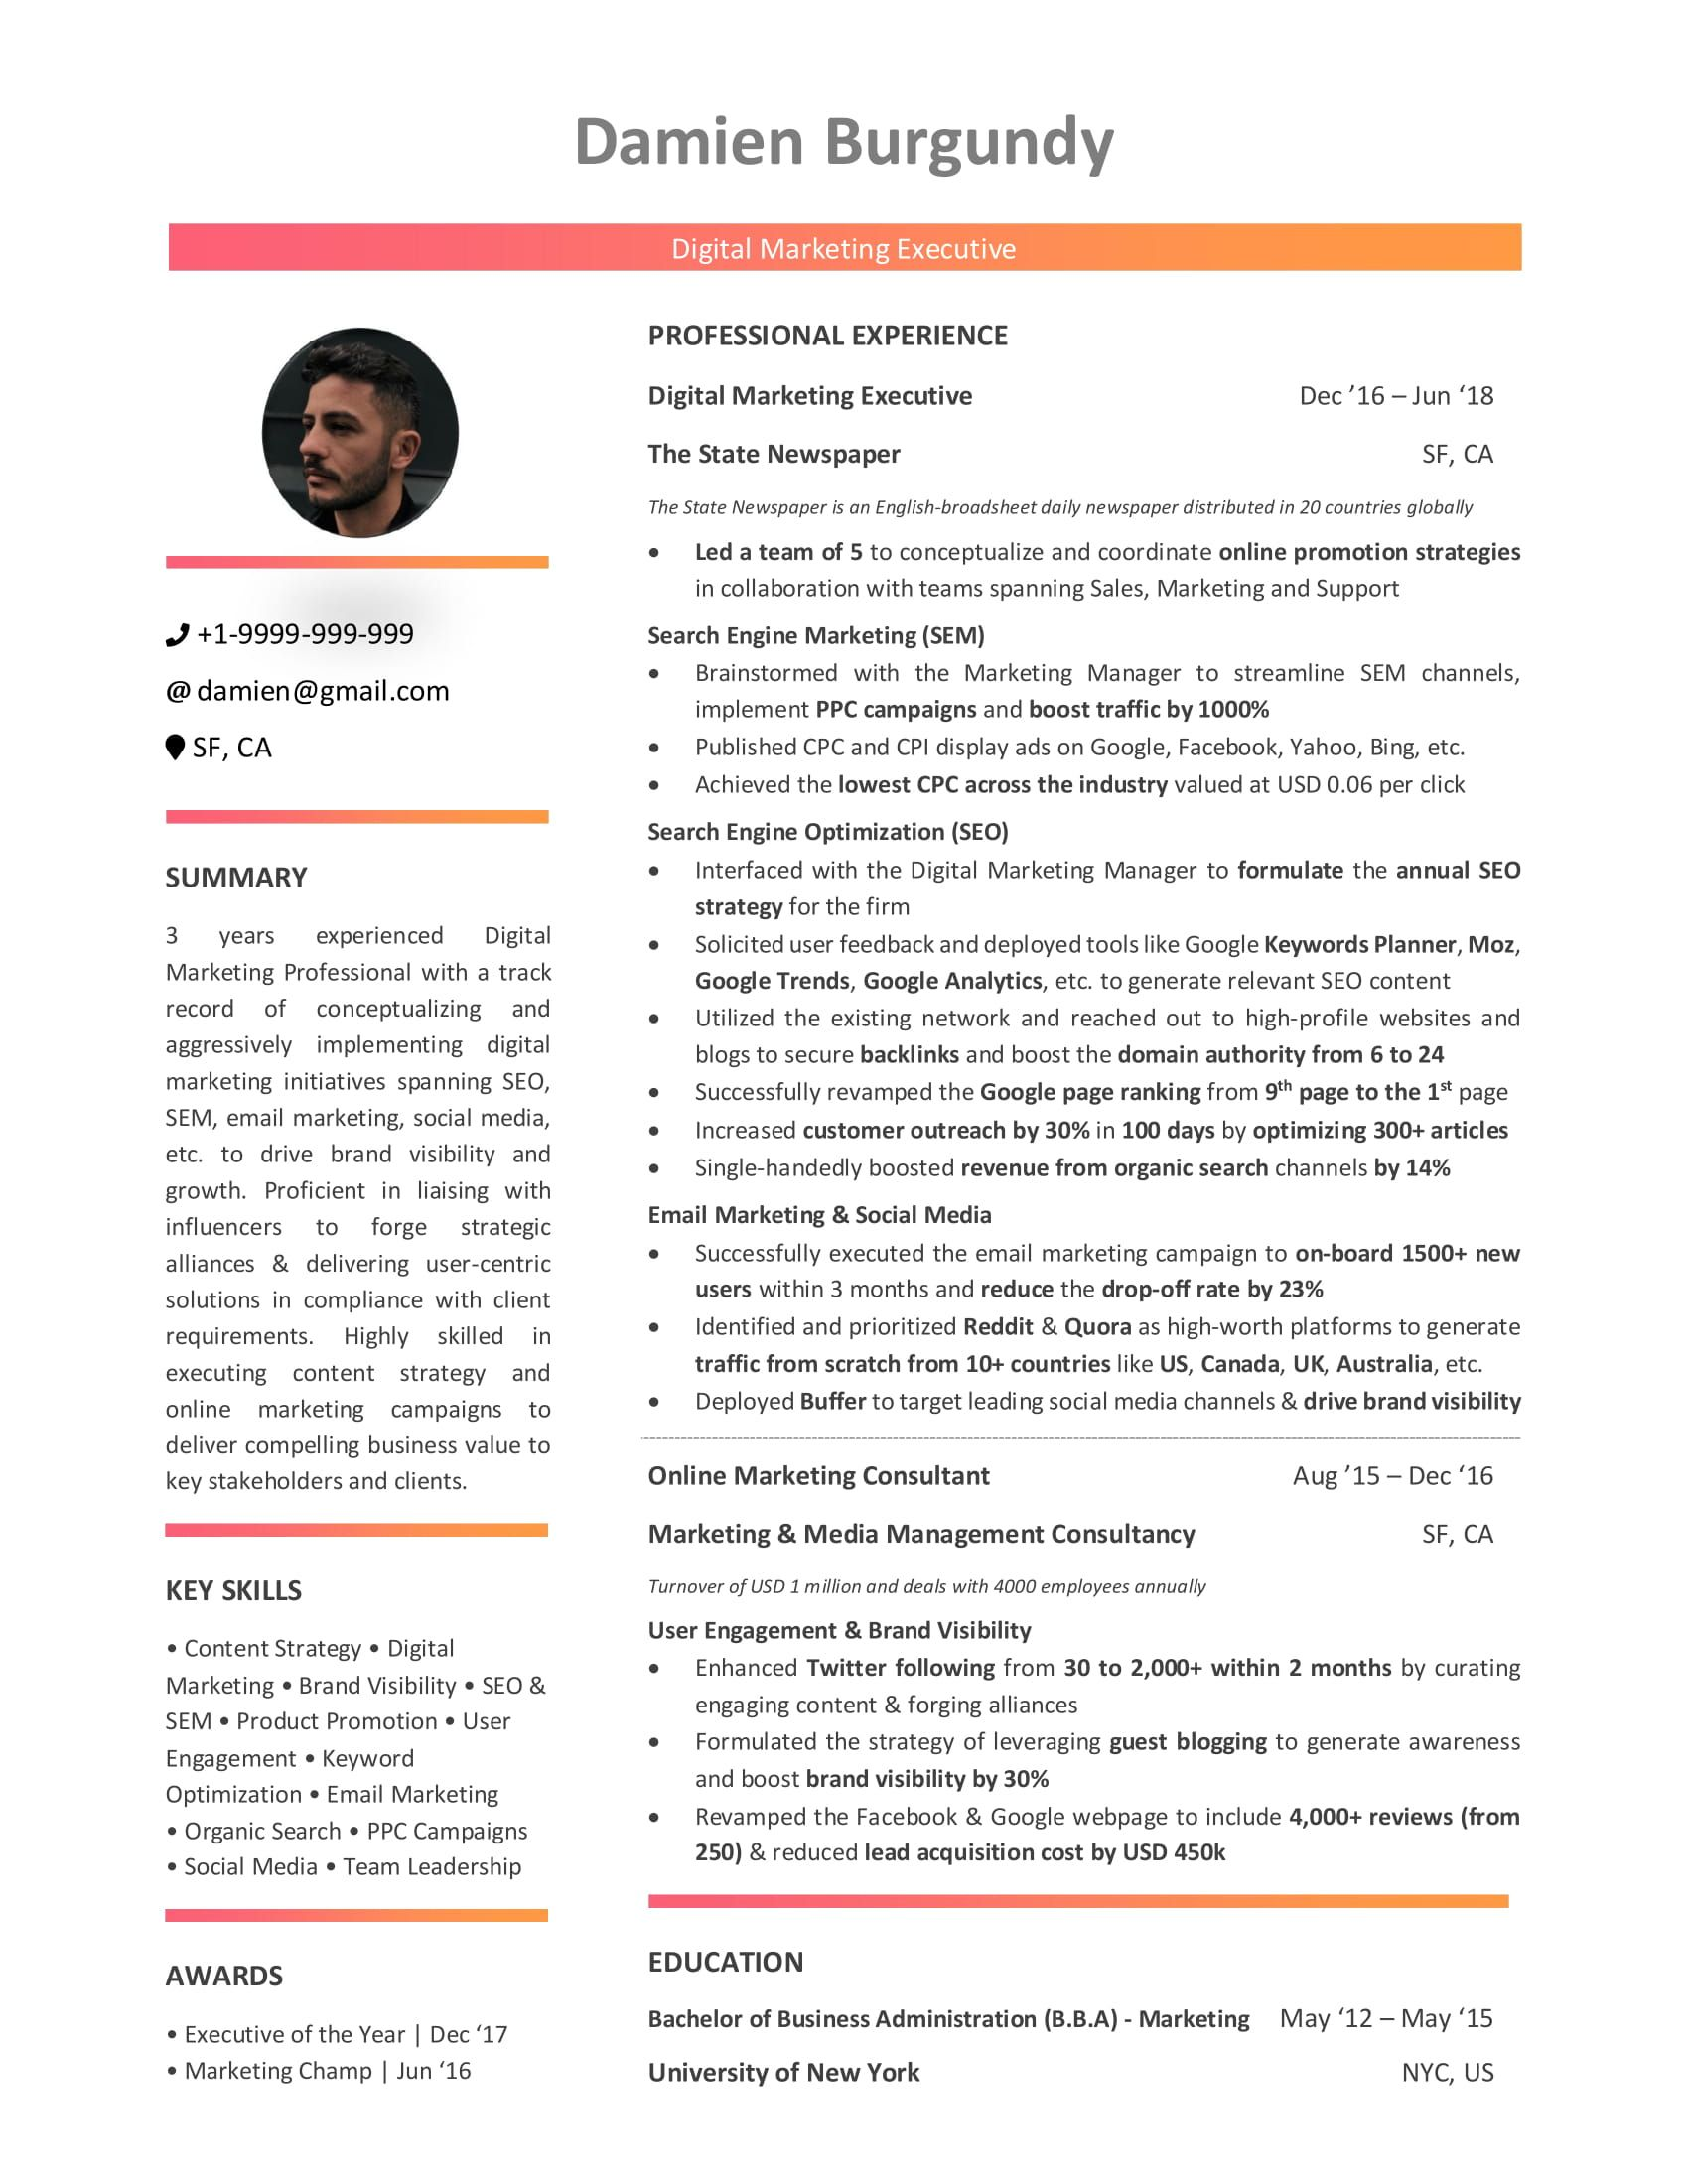 digital marketing resume guide with samples and examples sample free professional builder Resume Digital Marketing Resume Sample